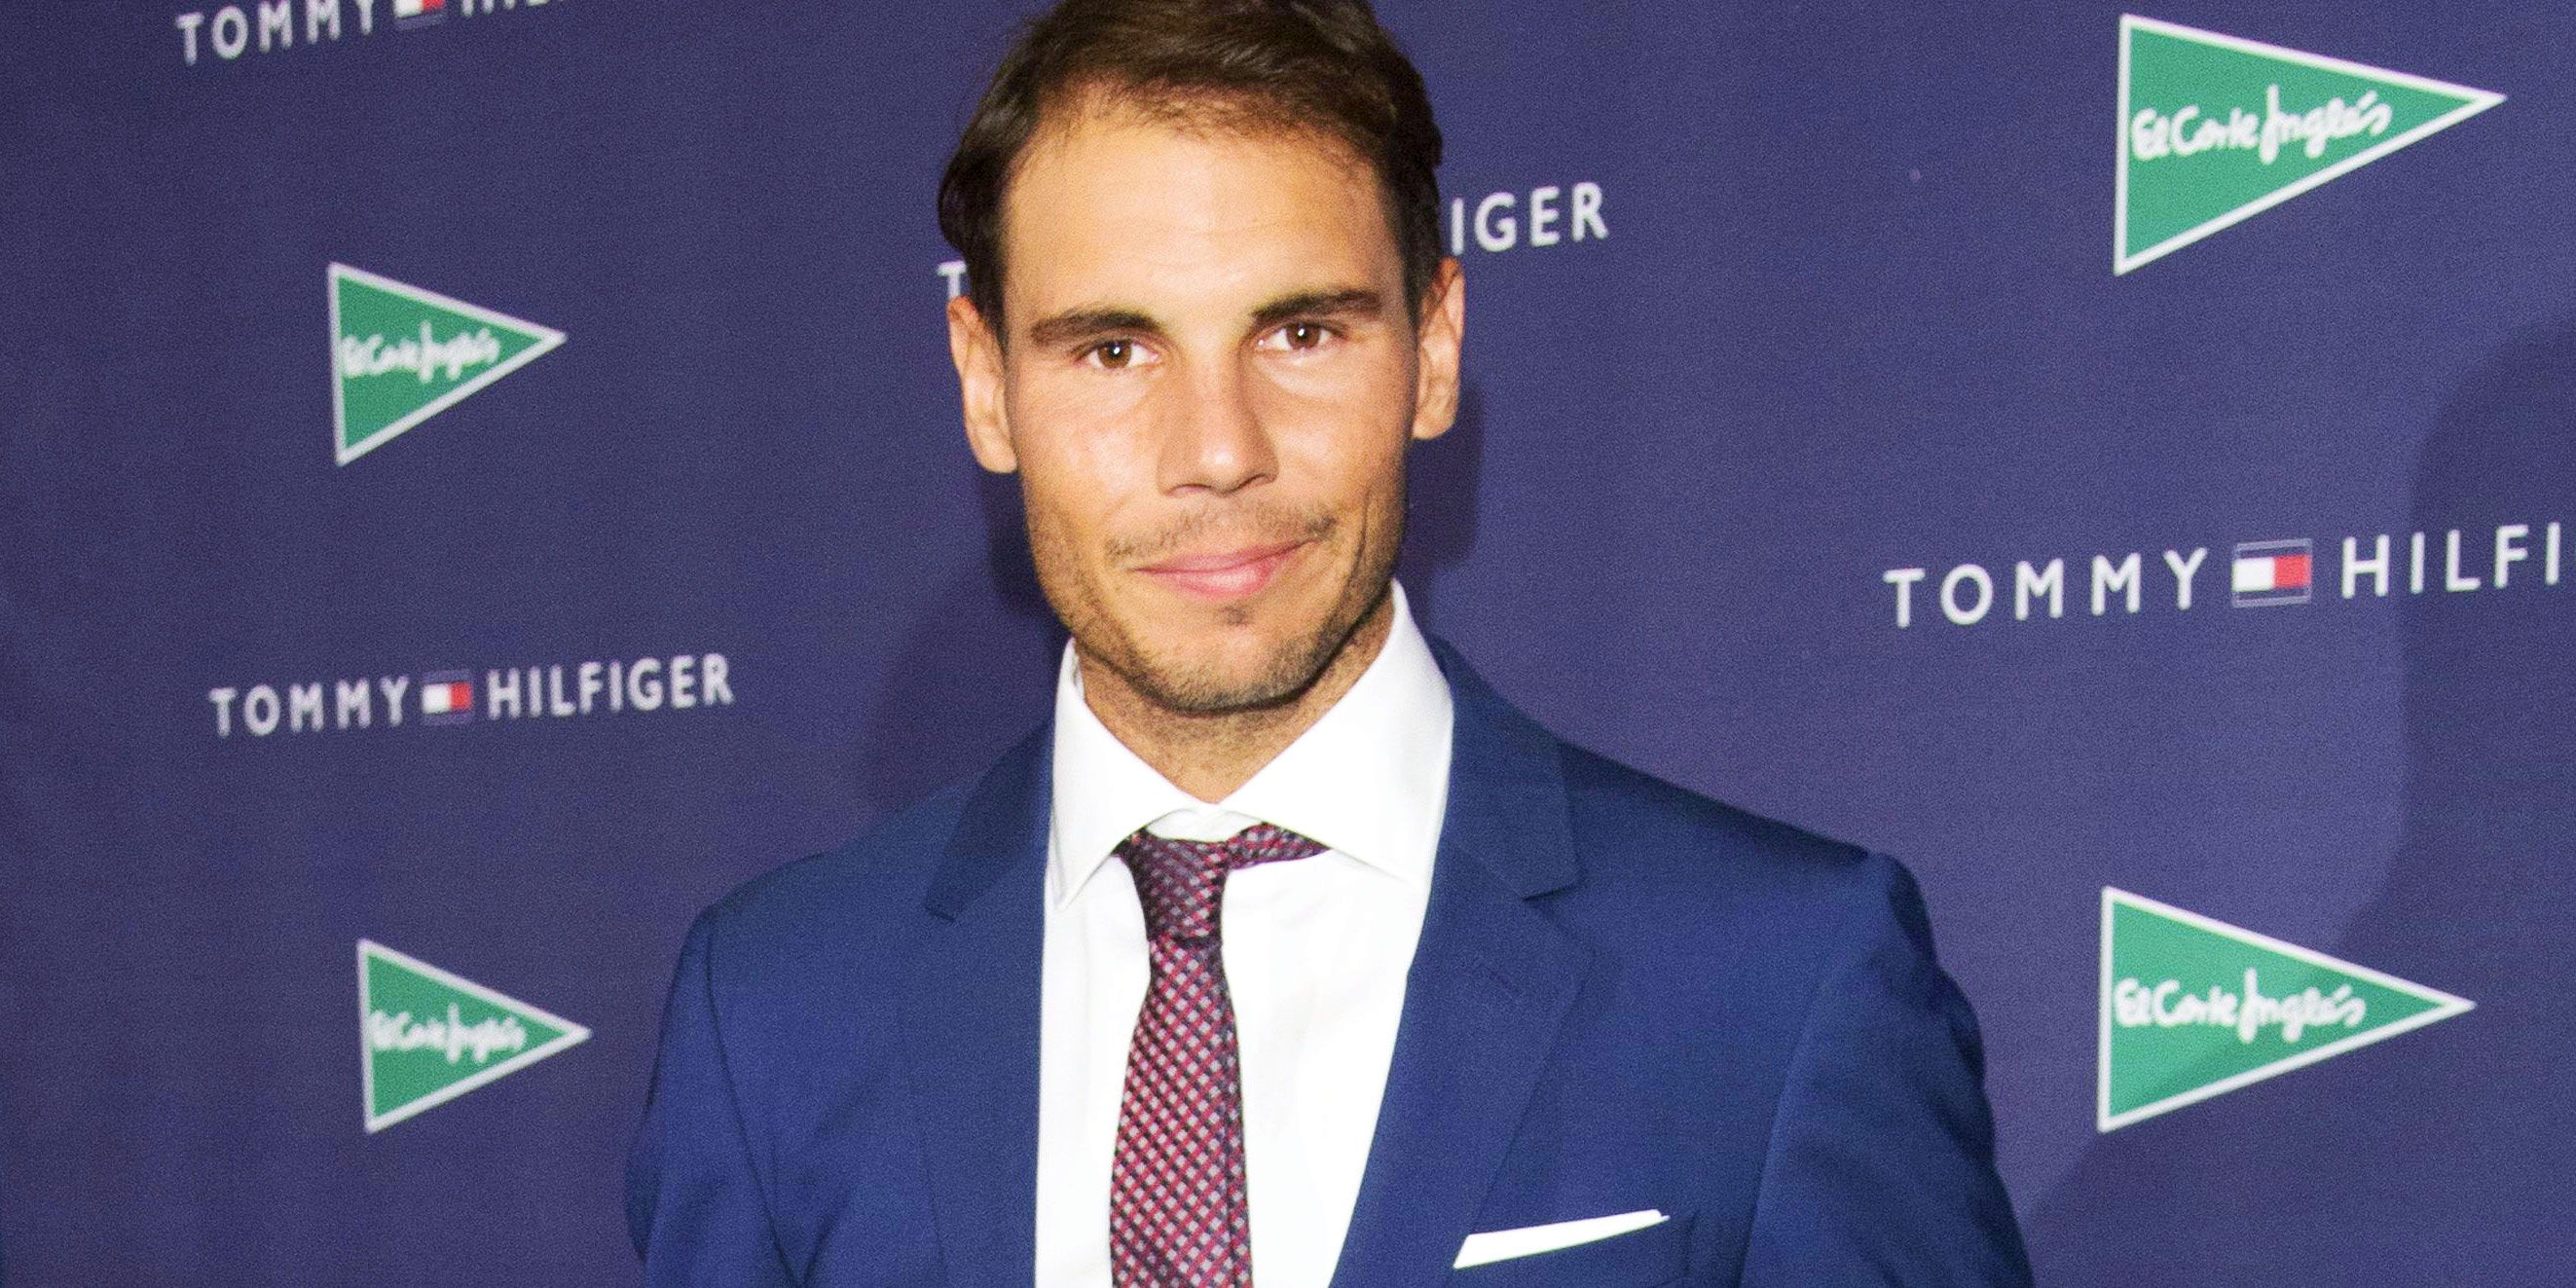 Rafael Nadal S Suit Is Proof That A Good Tailor Is A Style Essential